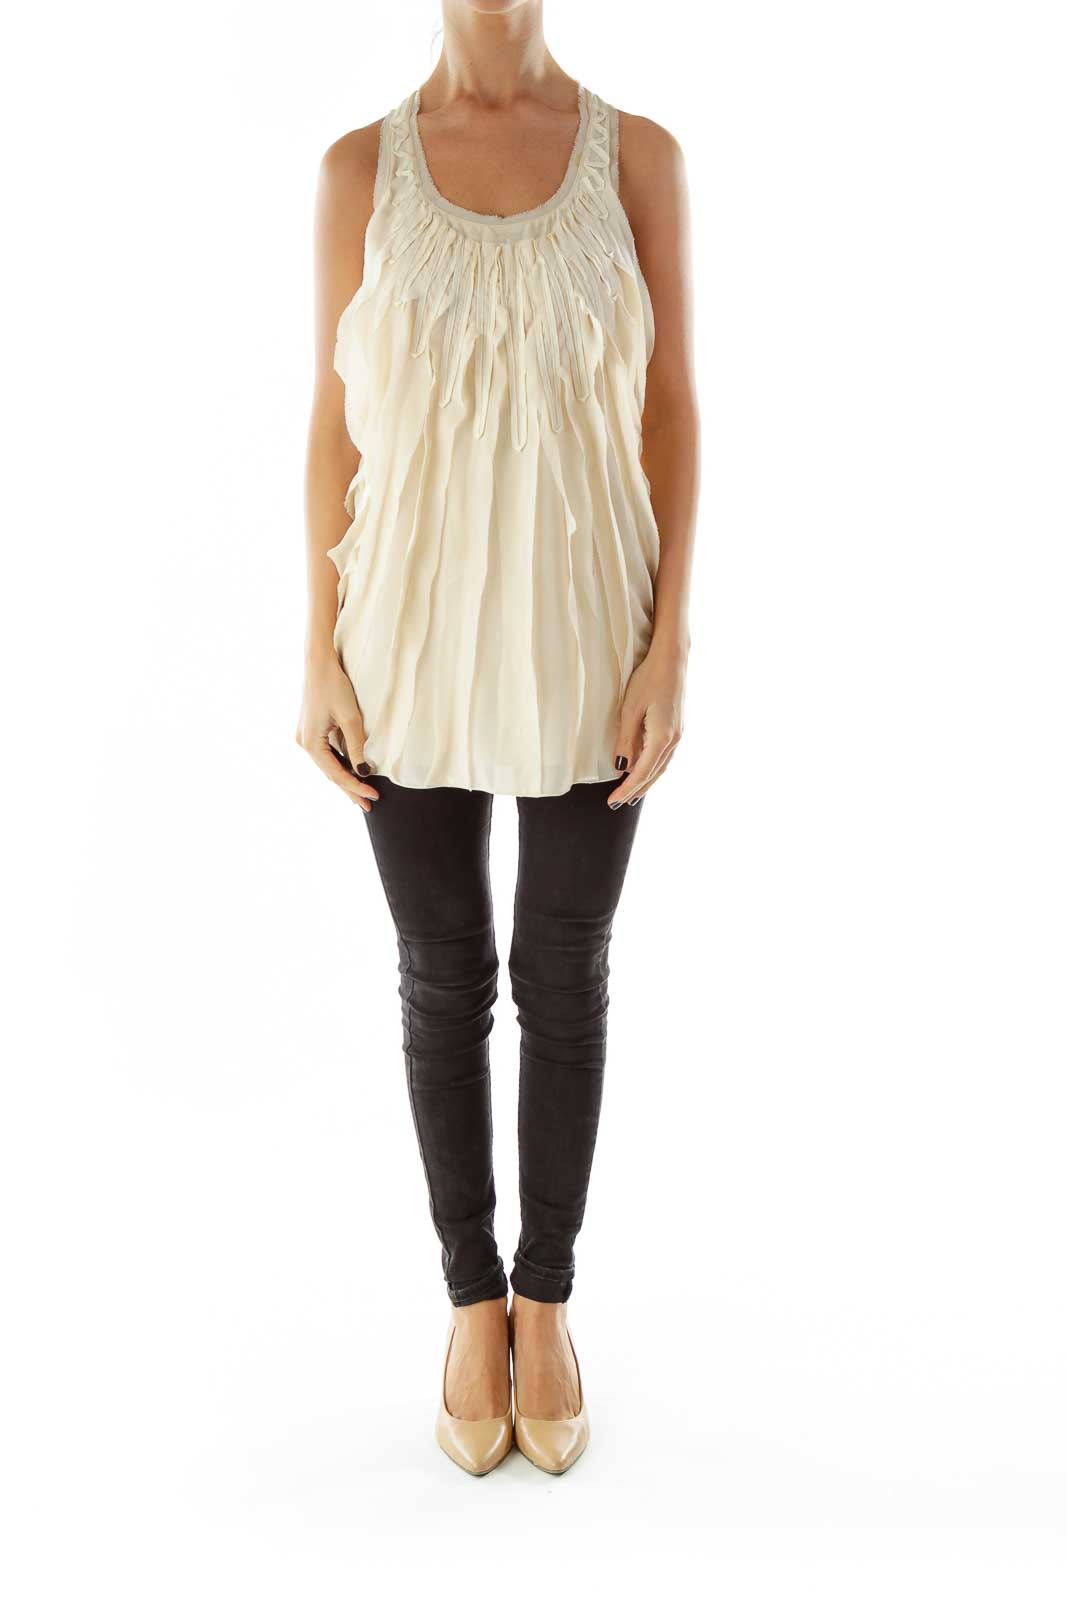 Beige Ruffled Tank Top